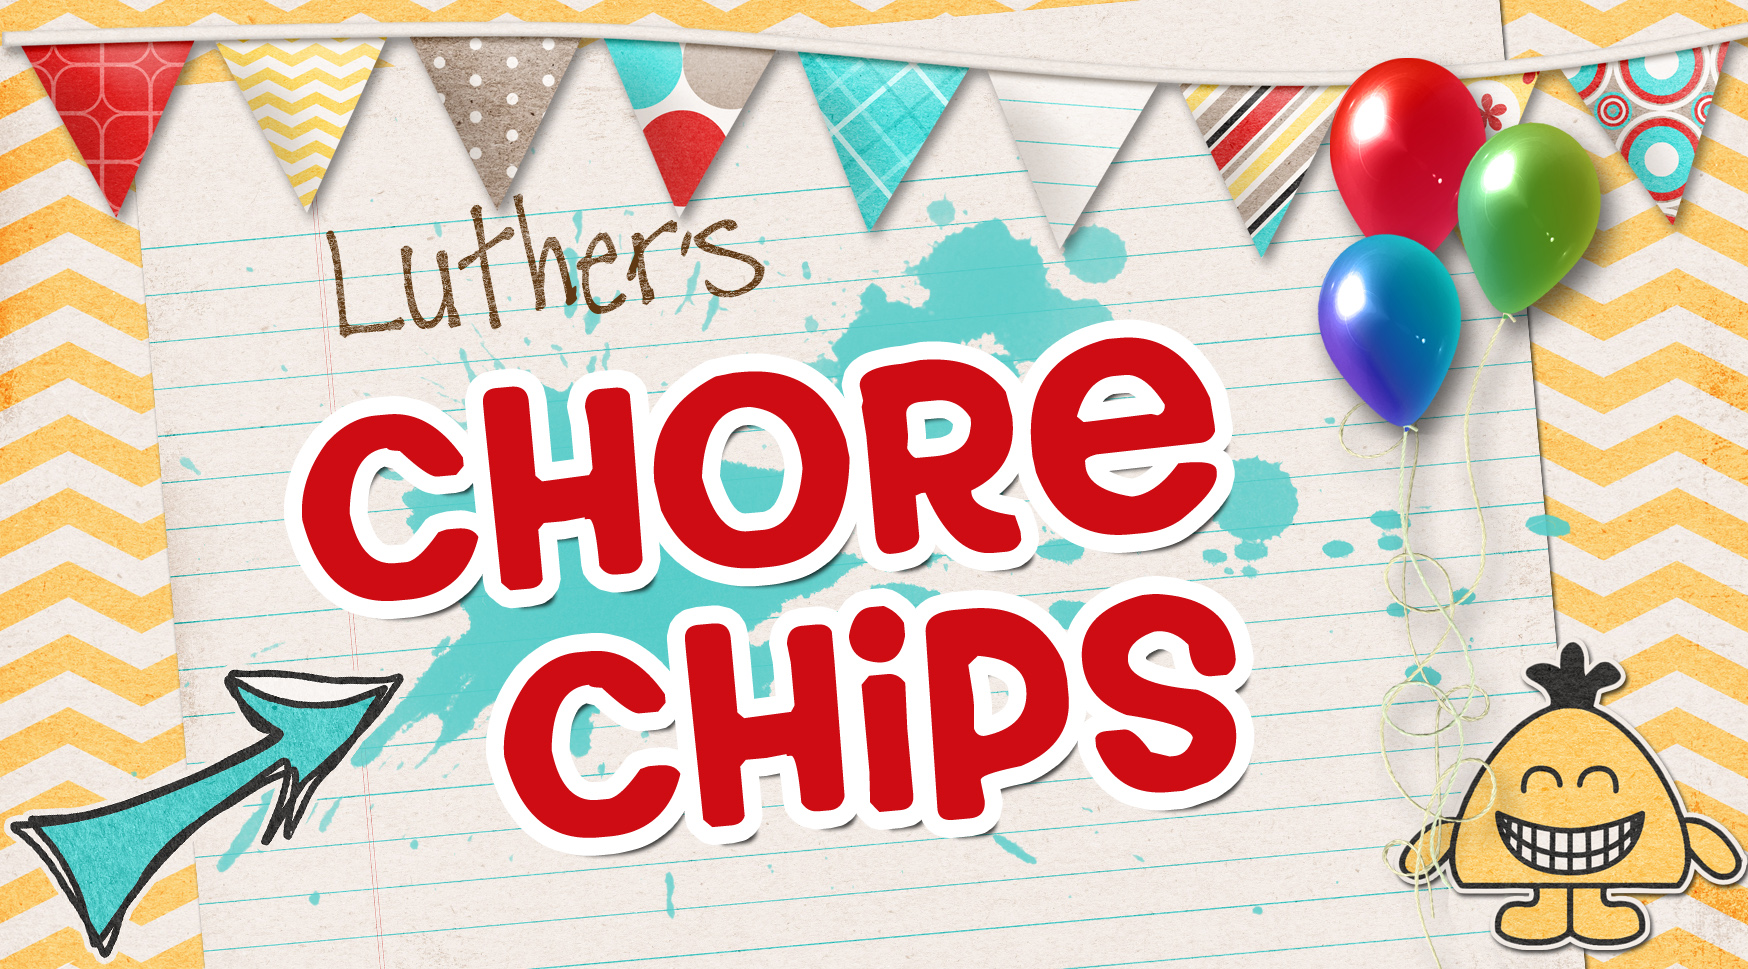 Chore chips label